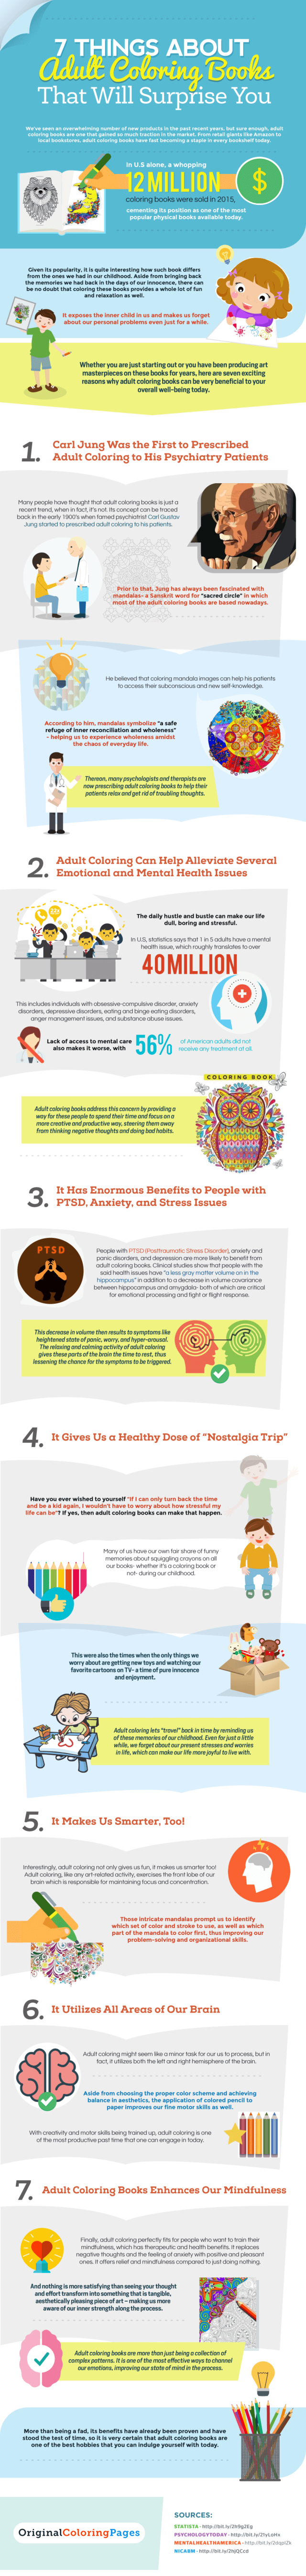 Benefits of coloring books infographic